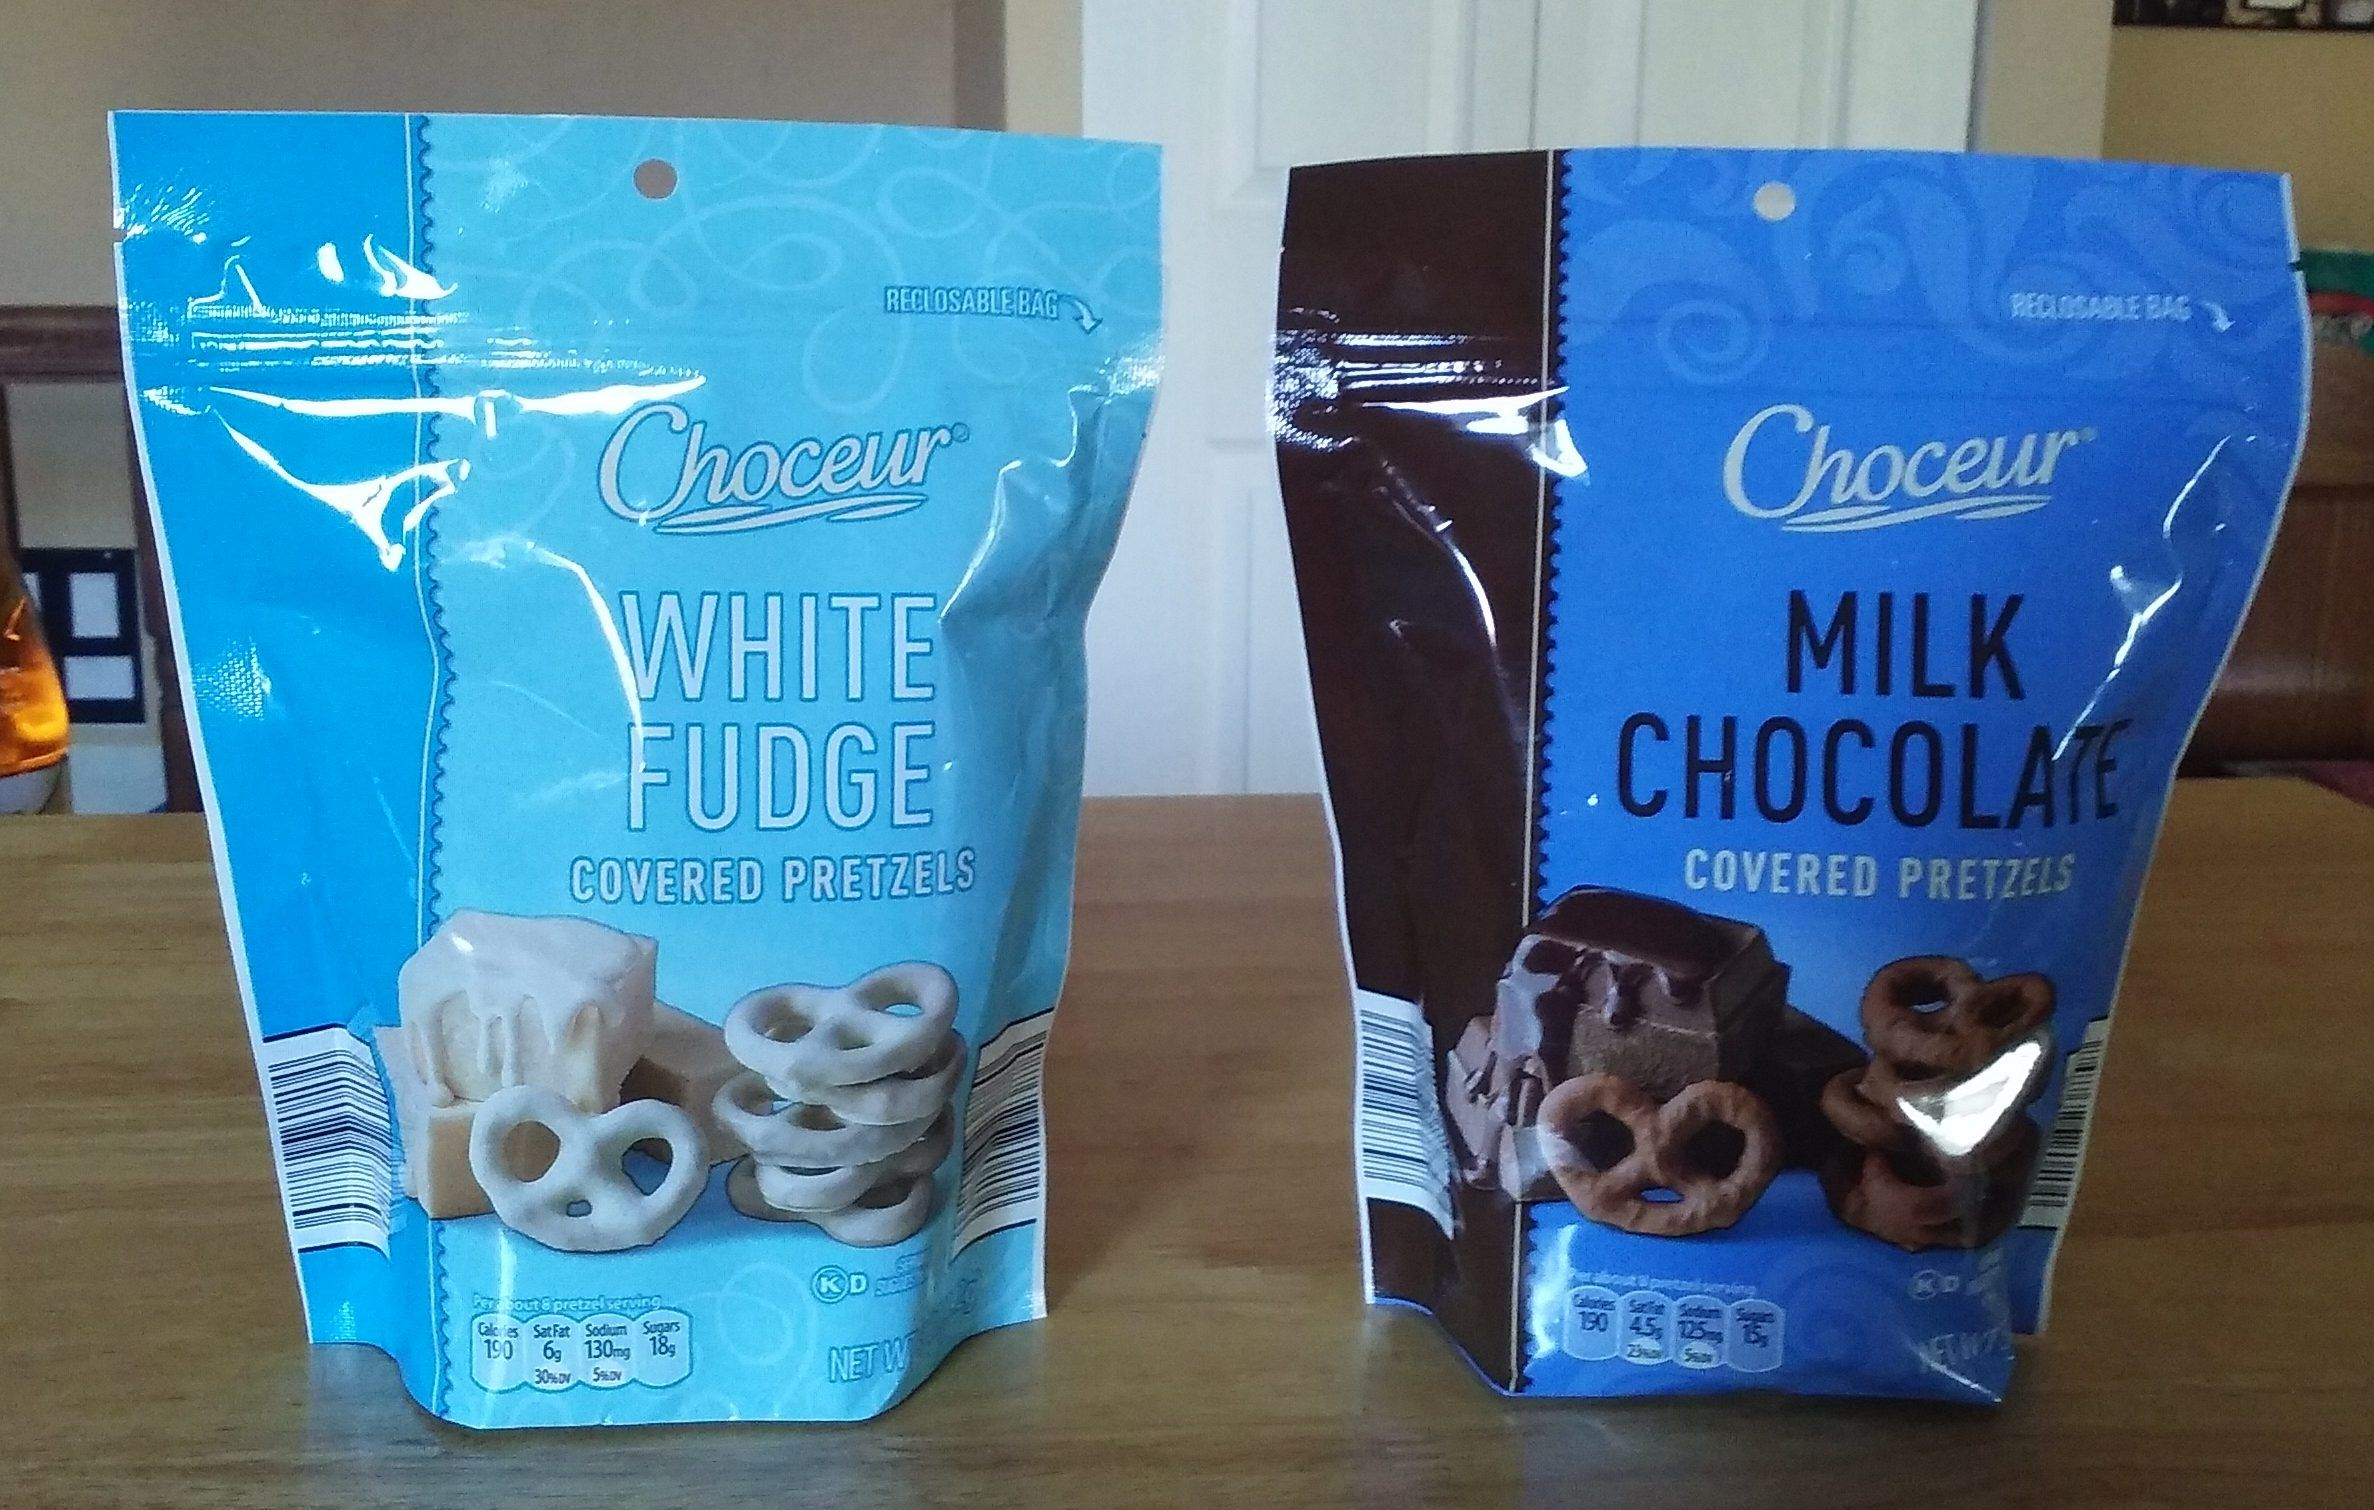 Choceur Milk Chocolate and White Fudge Covered Pretzels